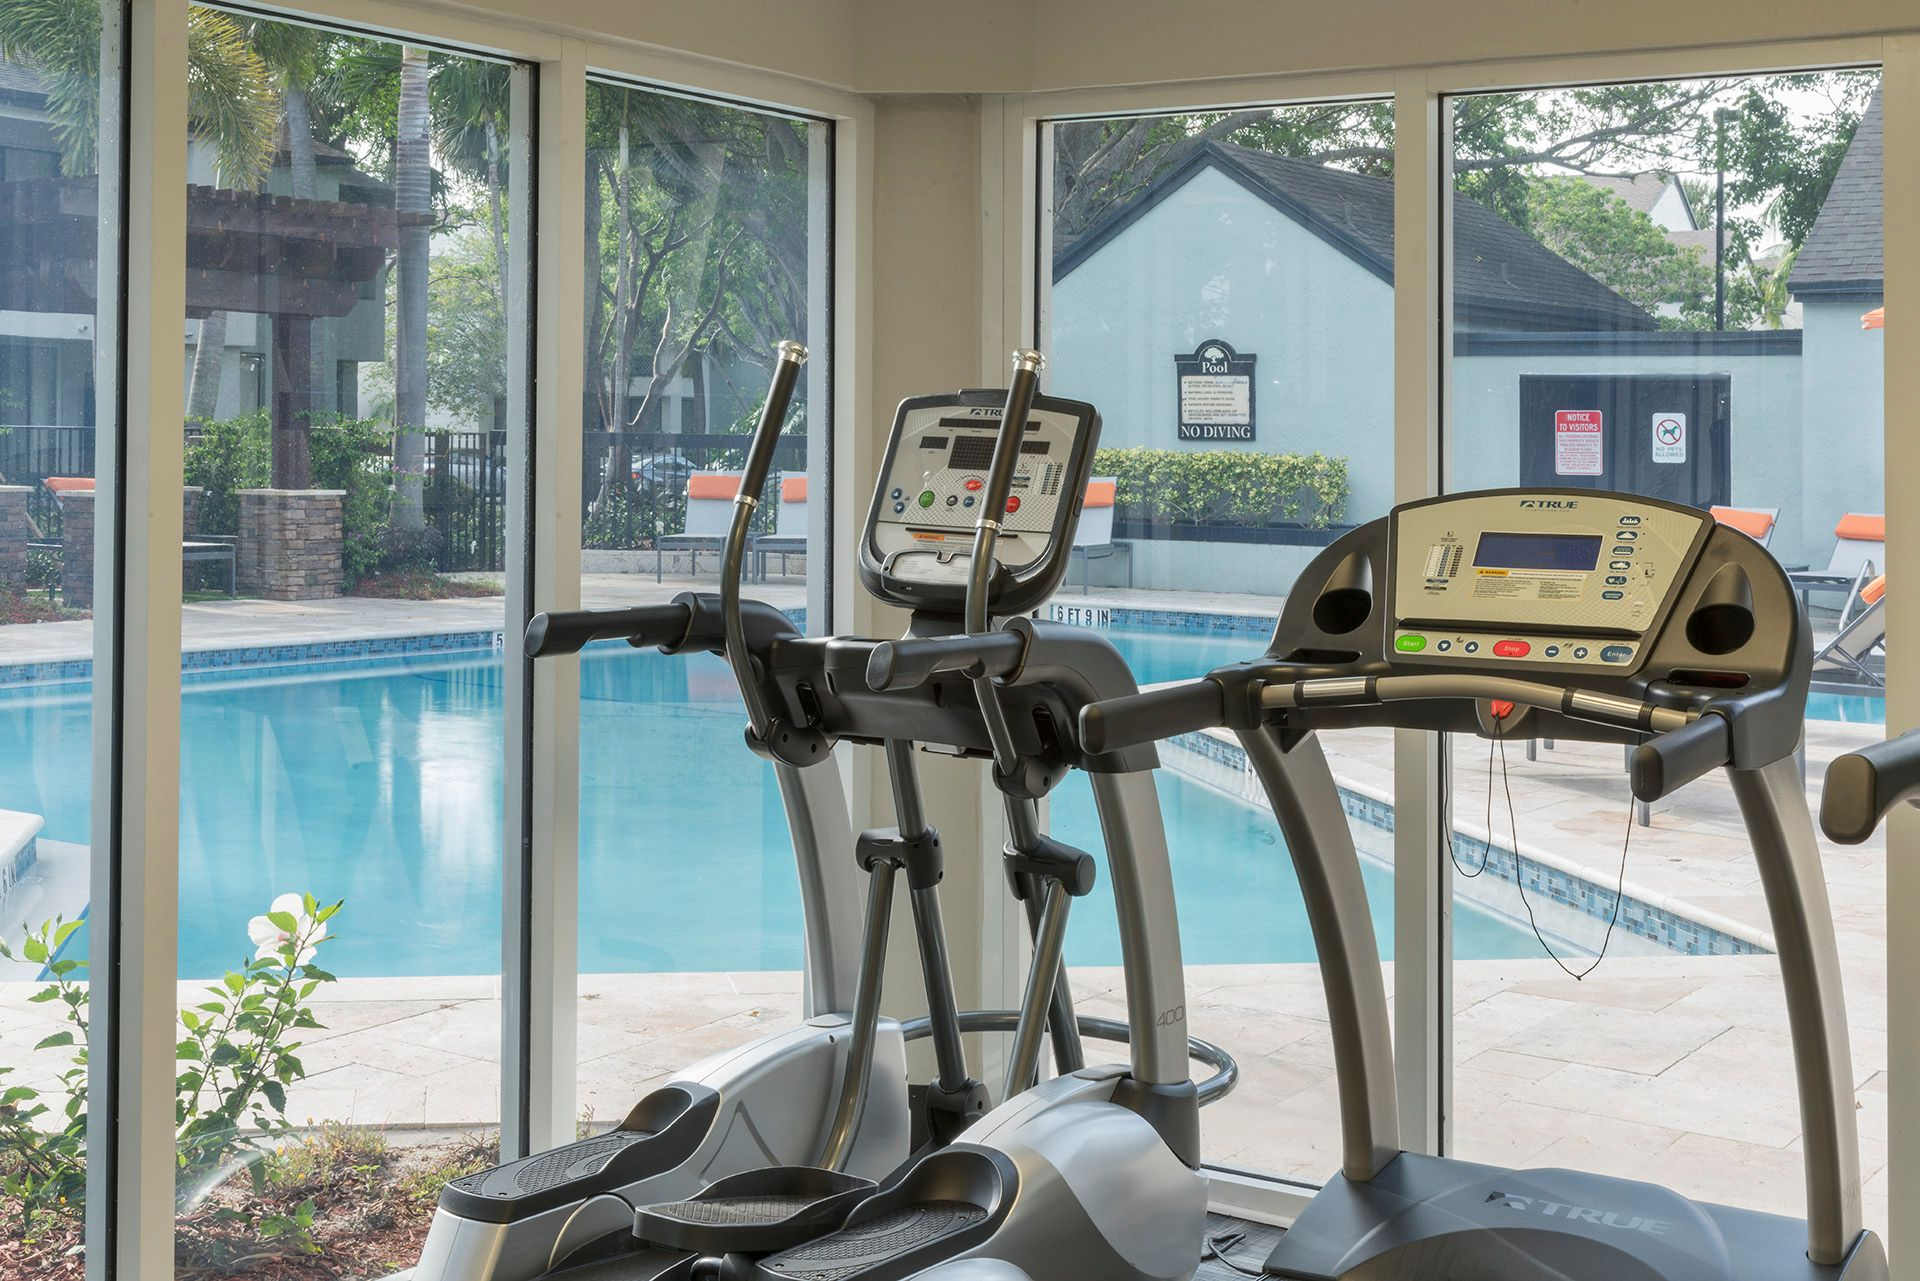 Fitness center overlooking swimming pool